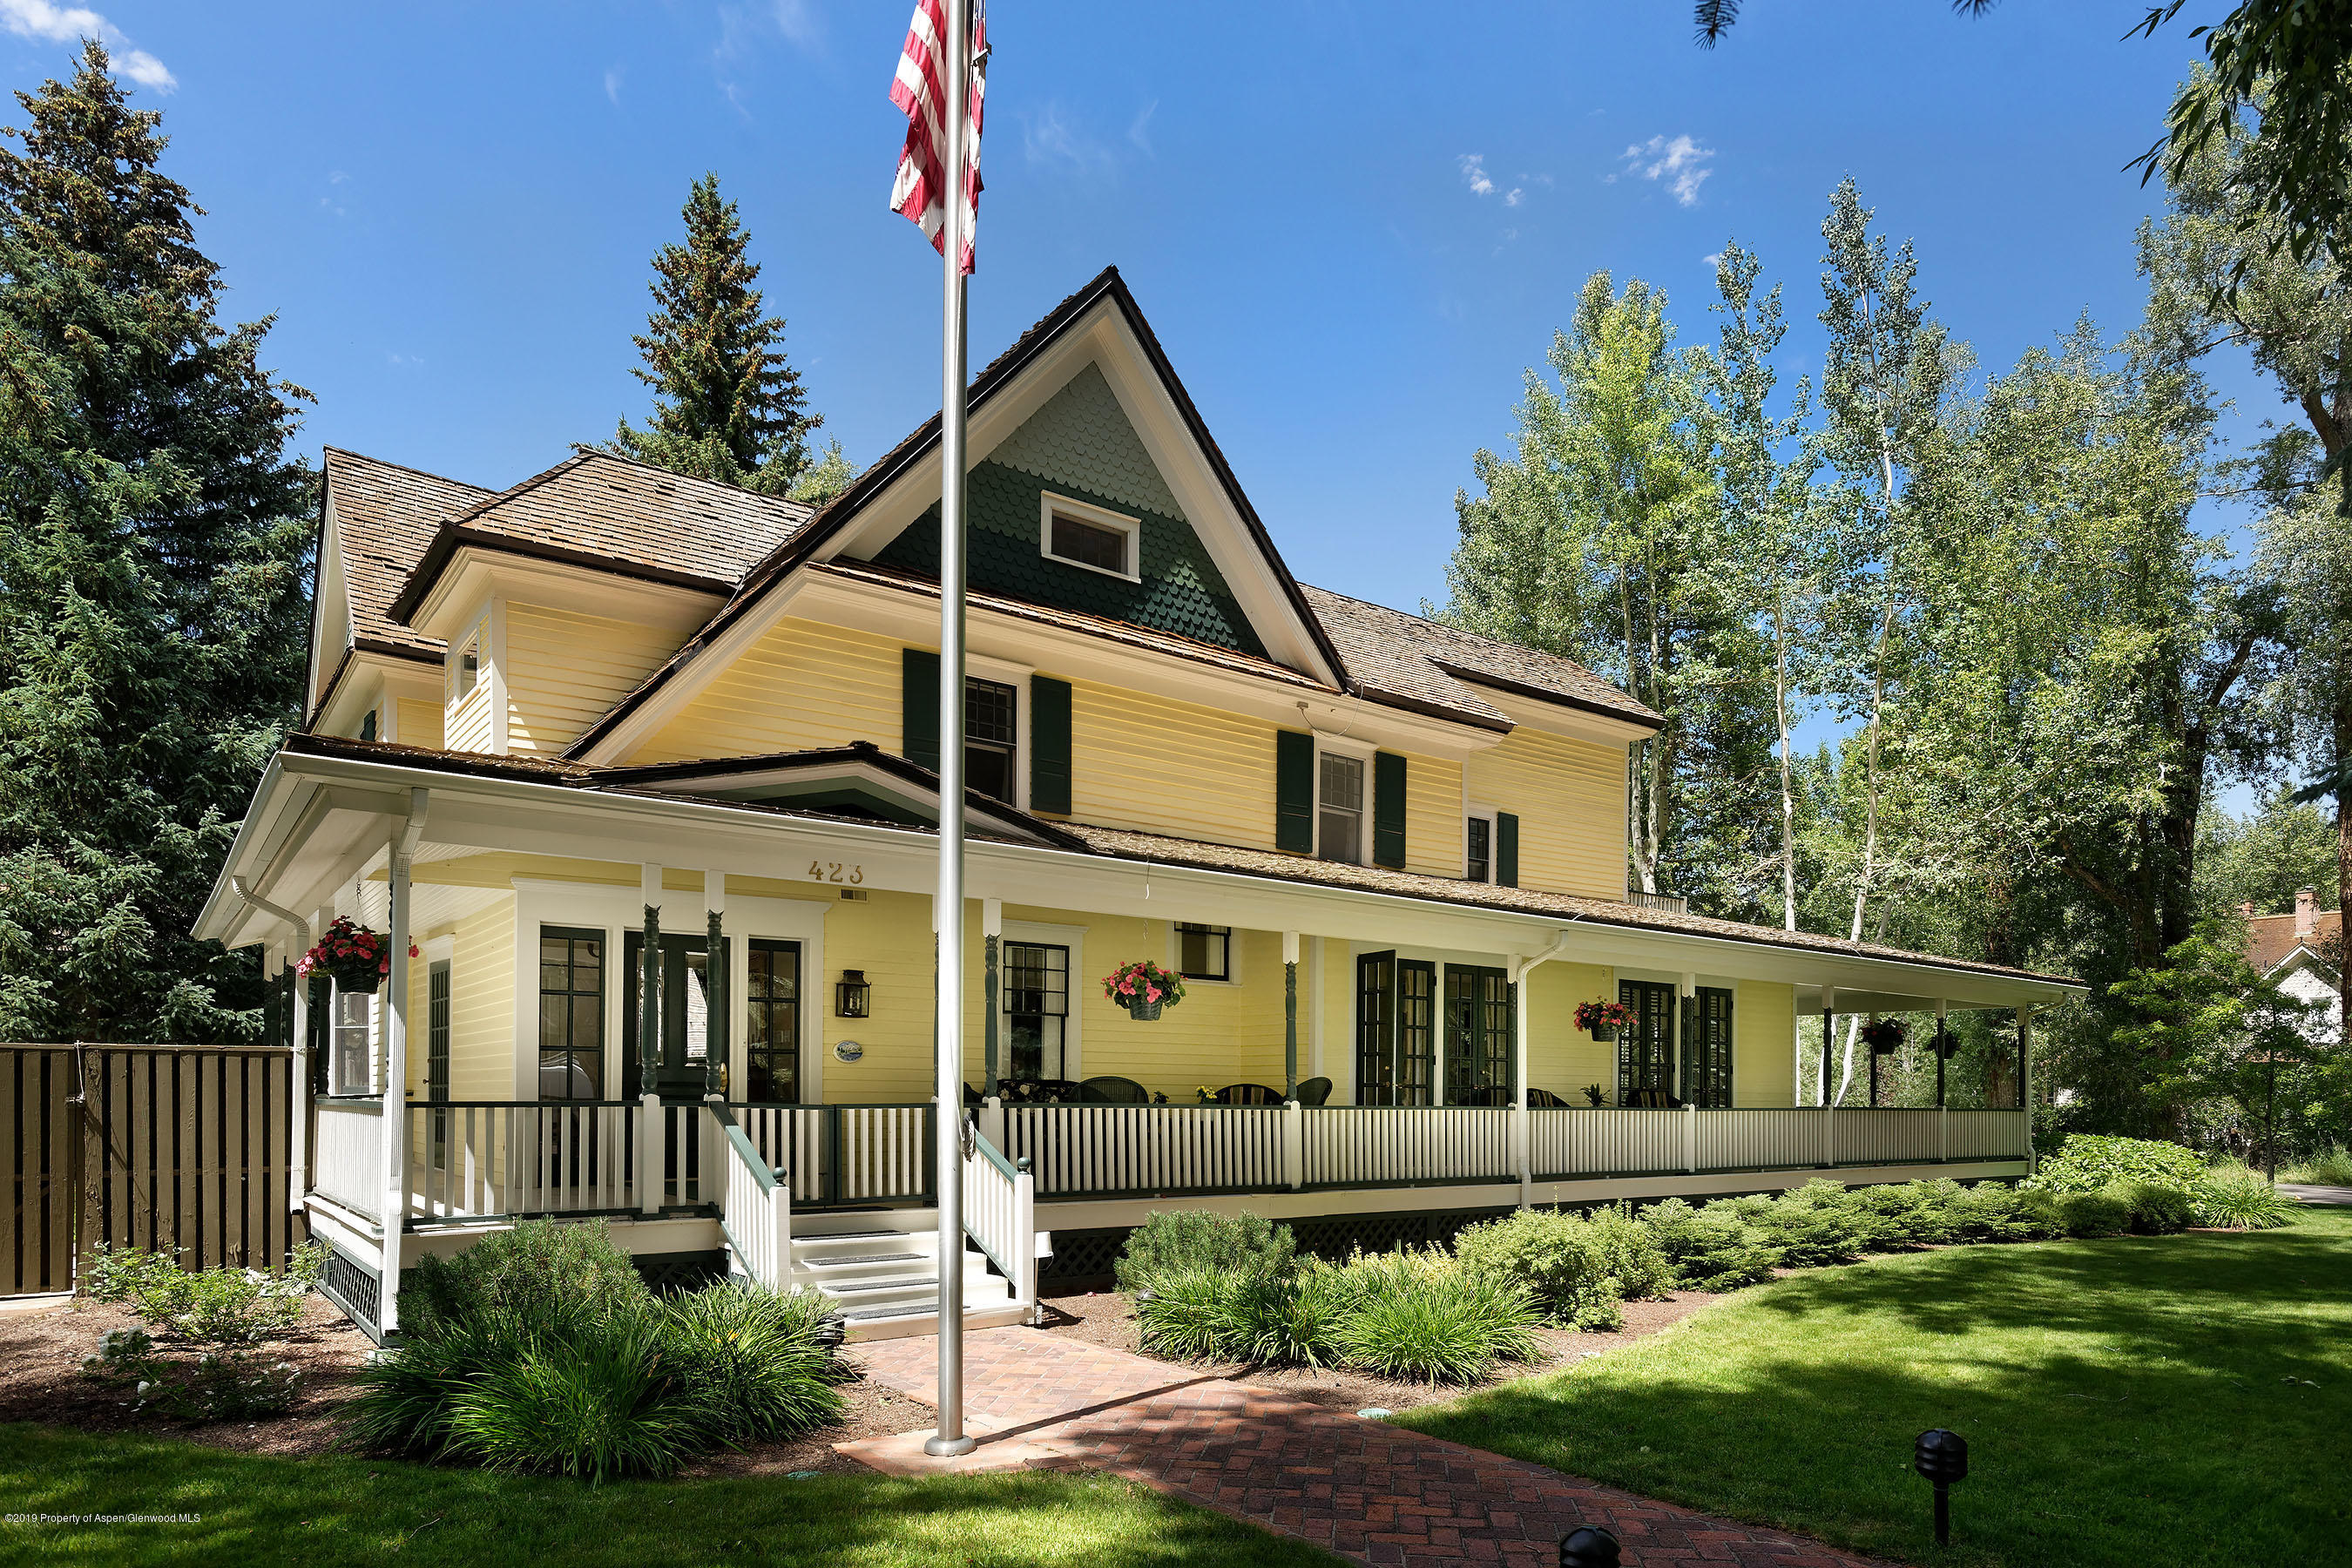 423 N 2nd Street - Aspen, Colorado